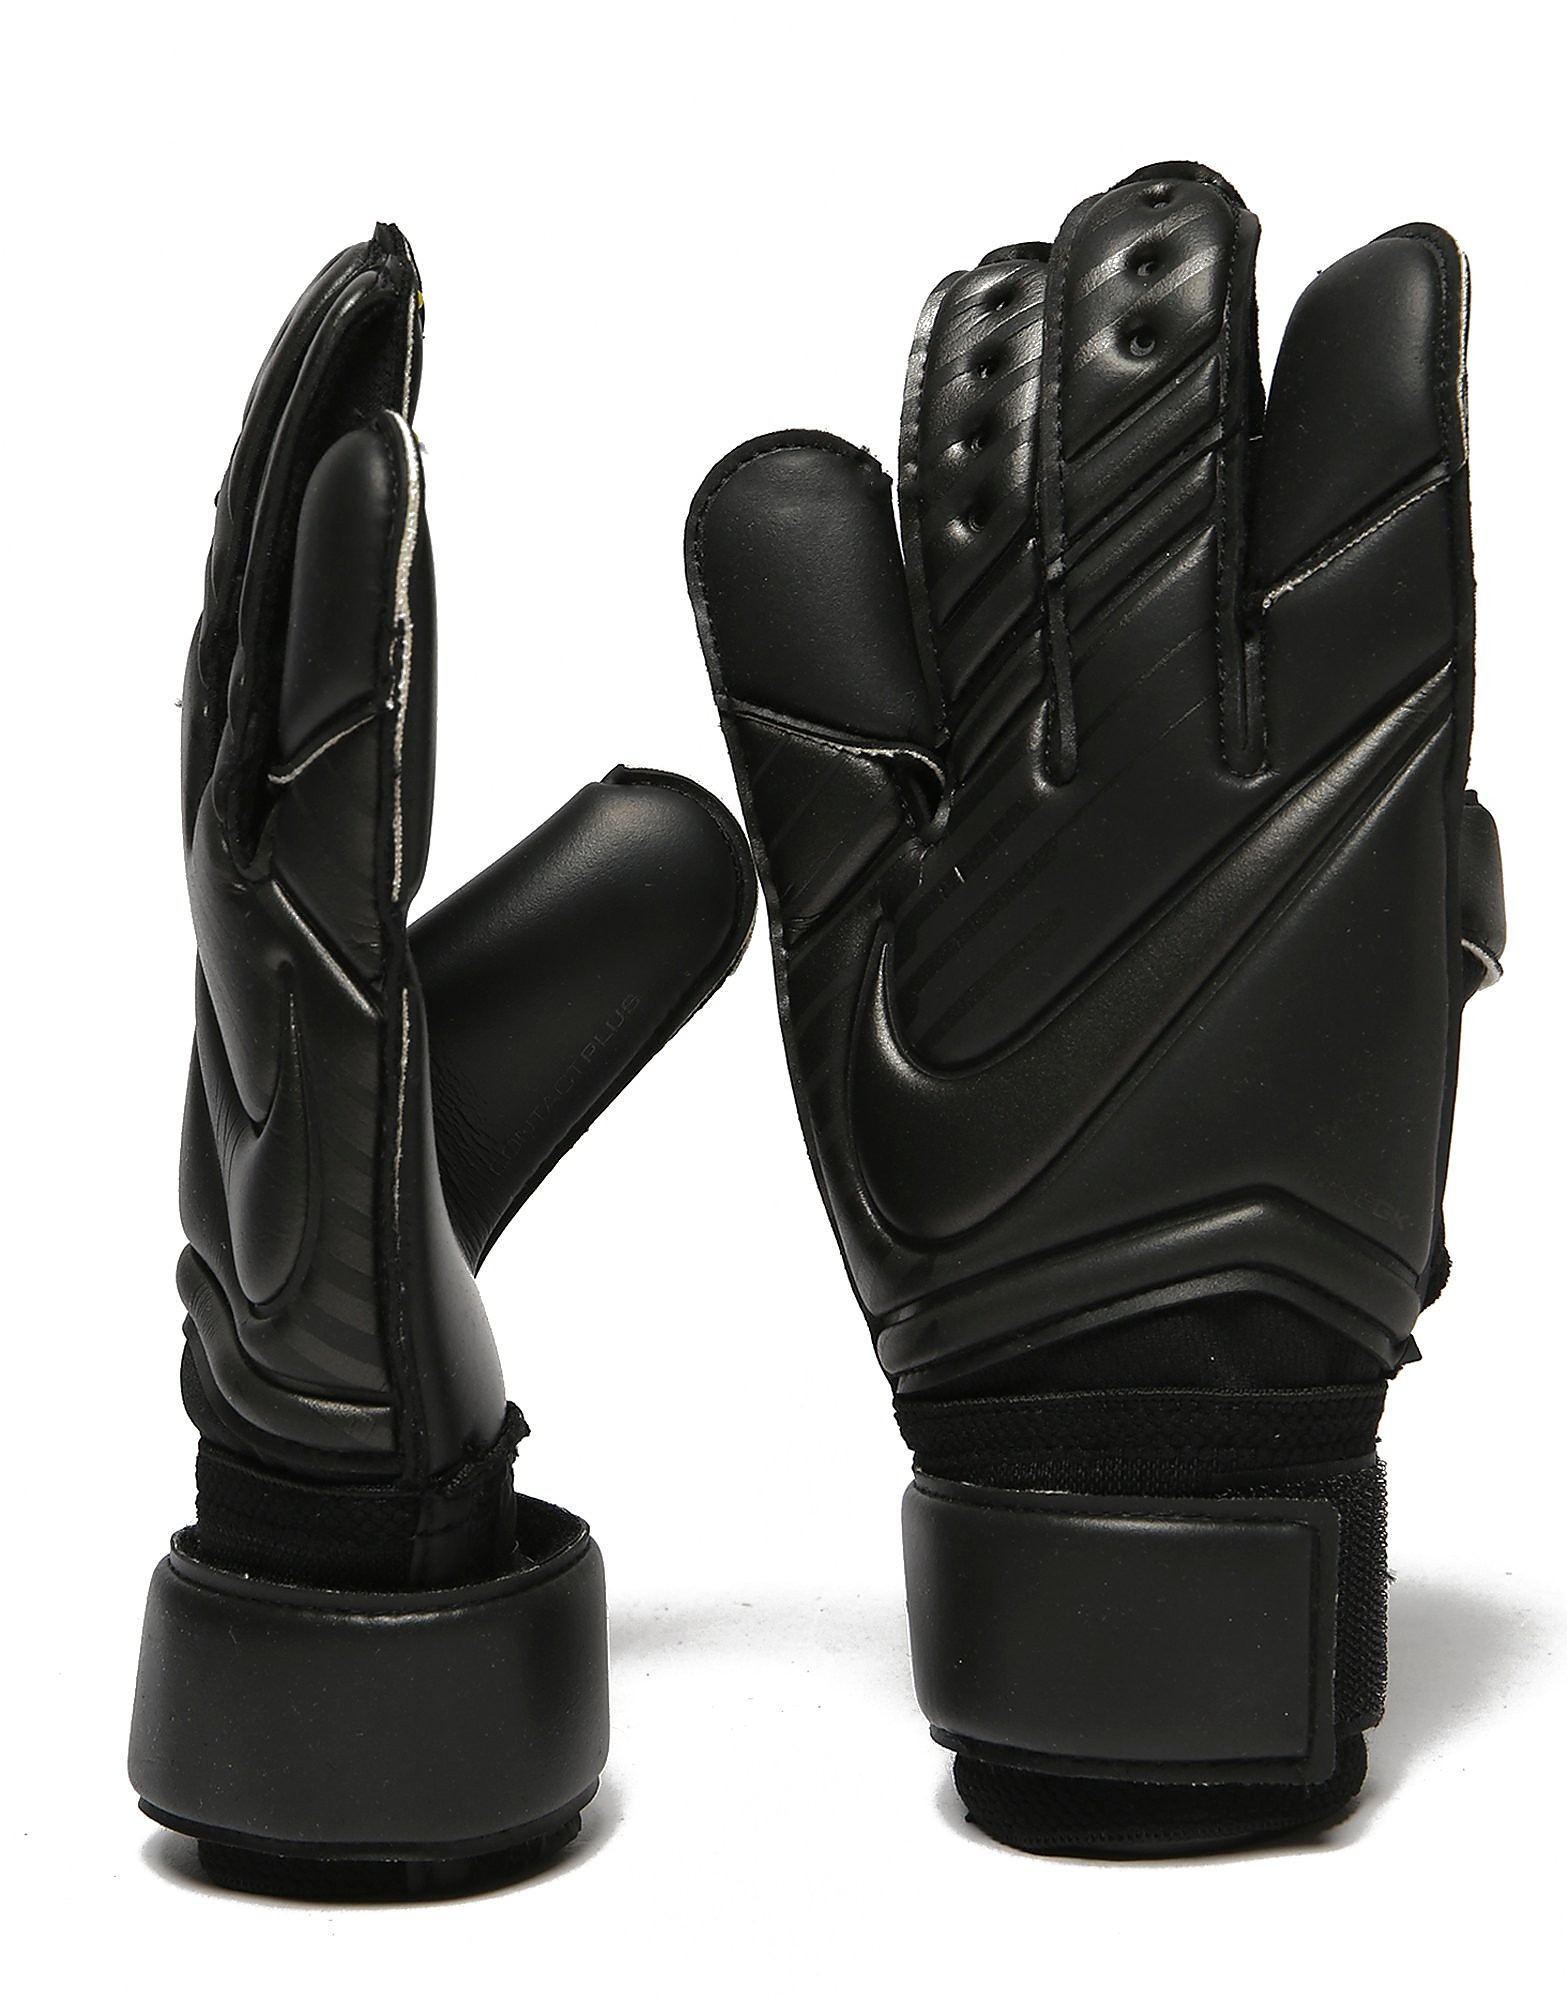 Nike Vapor Grip3 Goalkeeping Gloves